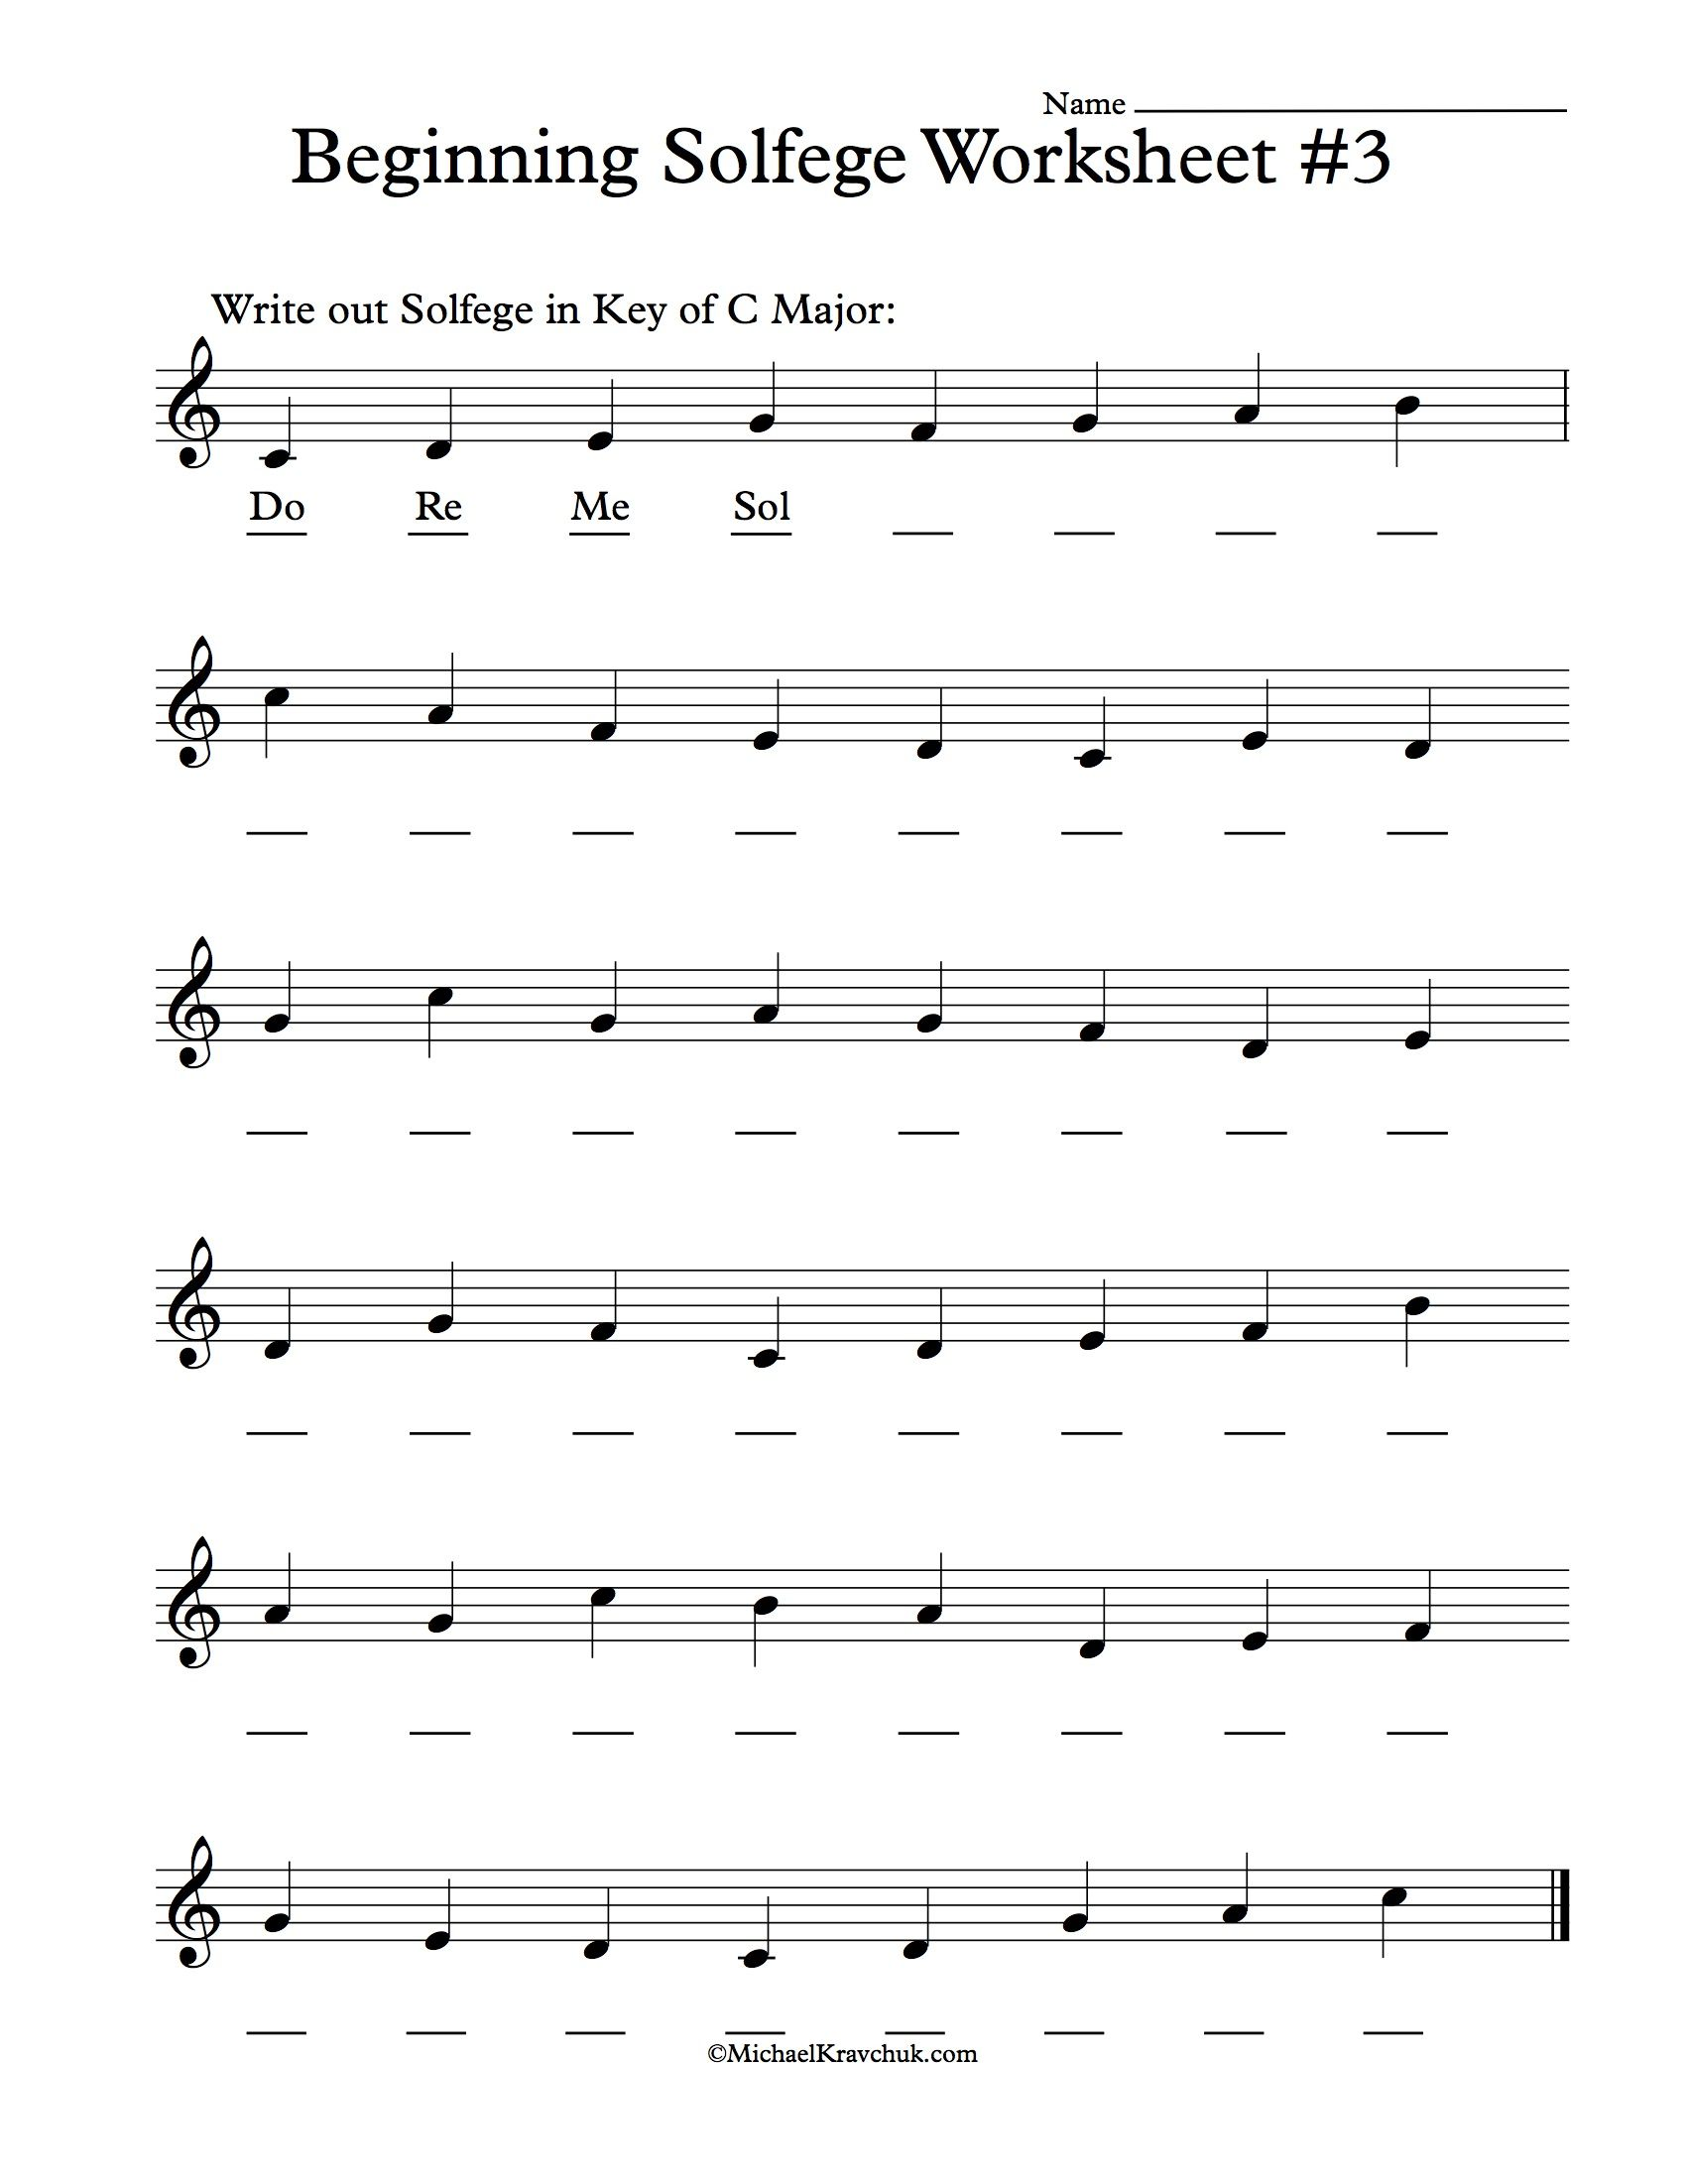 Beginning Solfege Worksheet 3 For Classroom Instructions